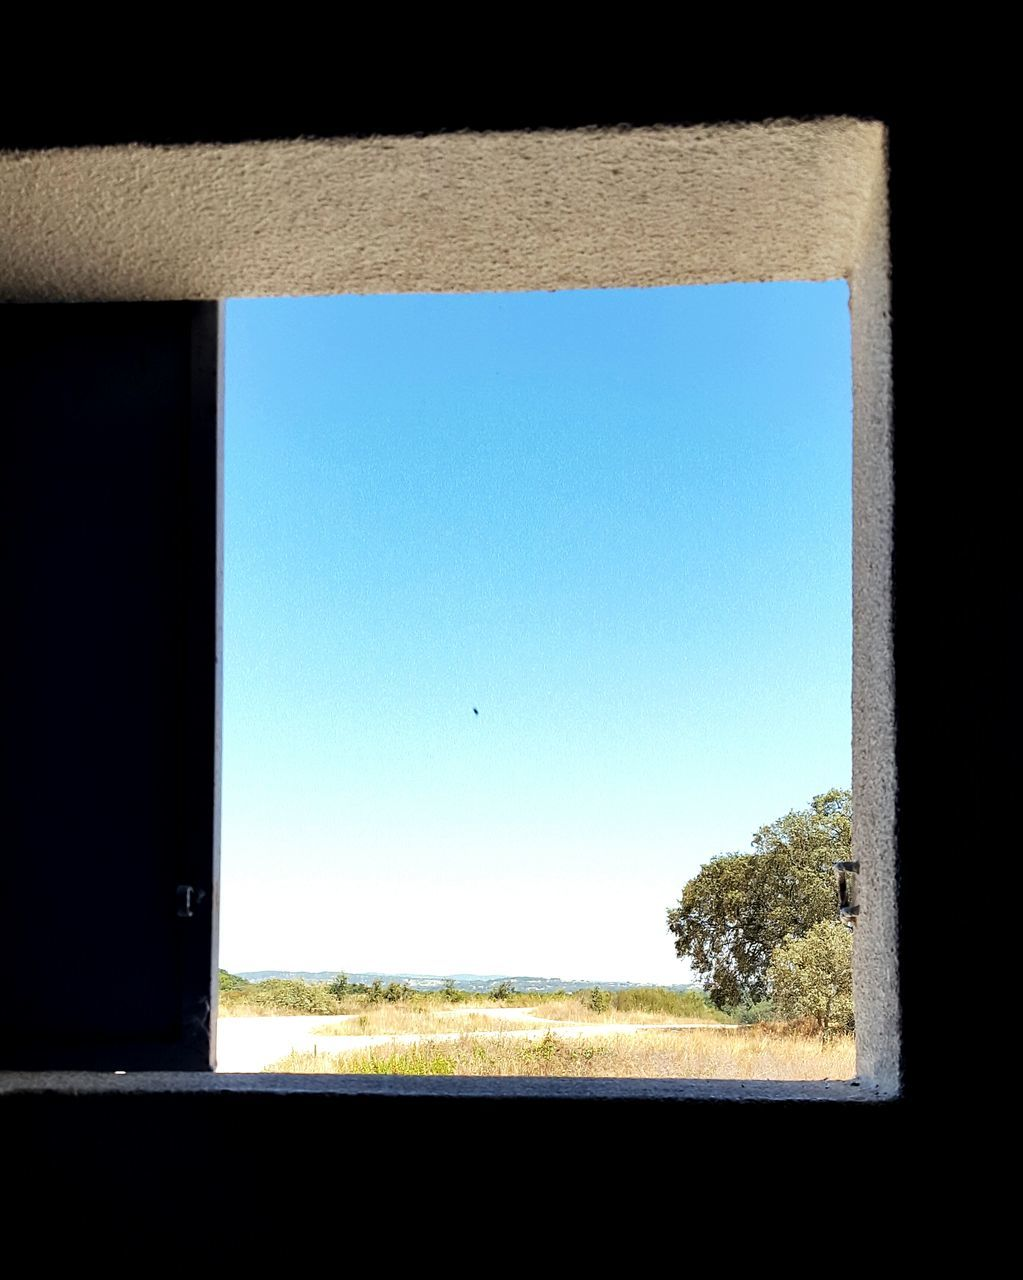 window, clear sky, day, no people, blue, nature, outdoors, sky, close-up